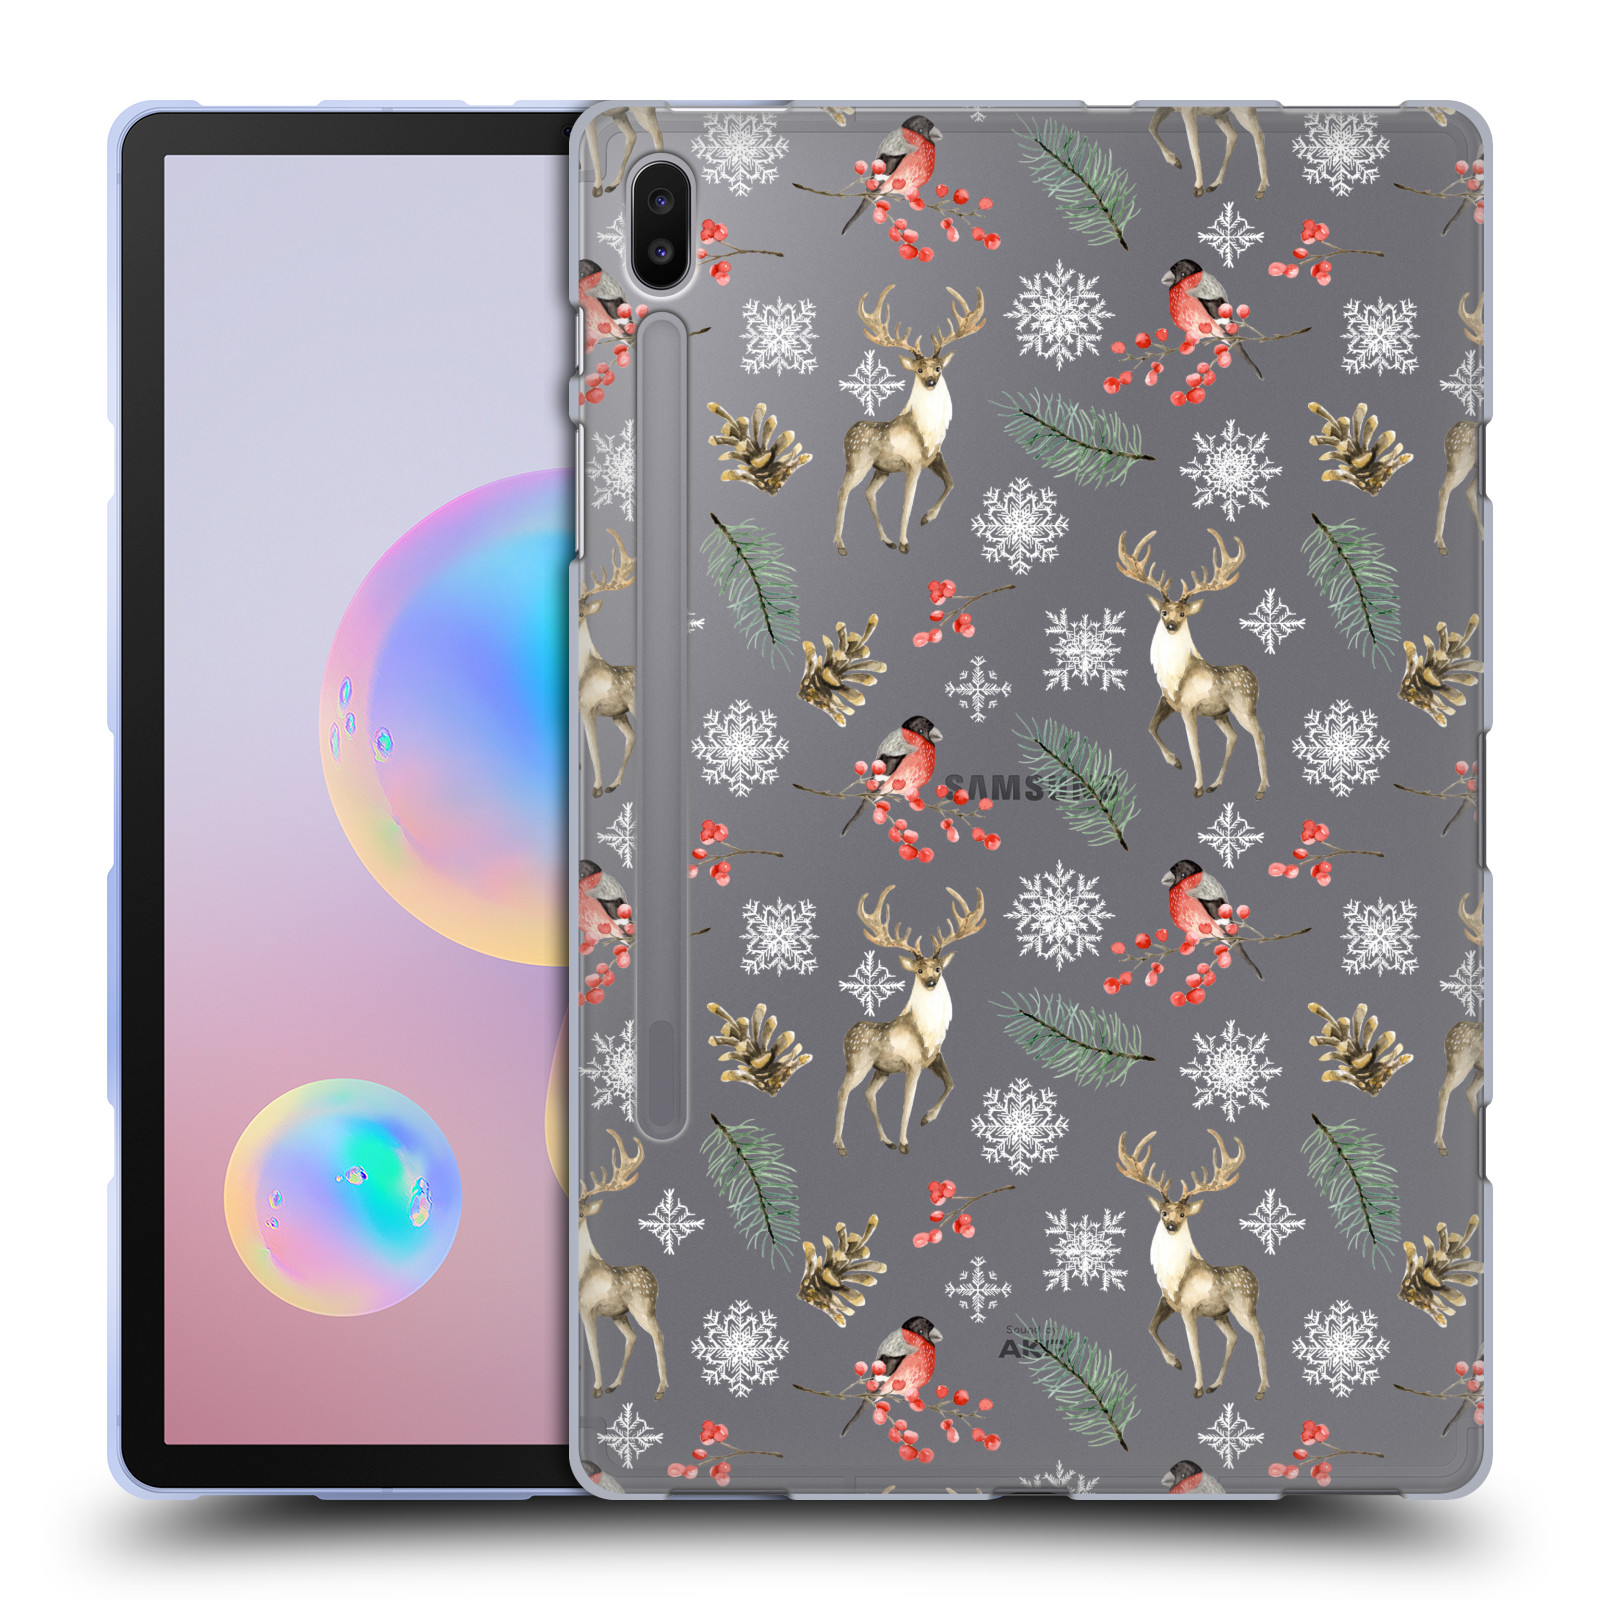 Official Julia Badeeva  Animal Patterns 4 Snowflakes Gel Case for Samsung Galaxy Tab S6 (2019)